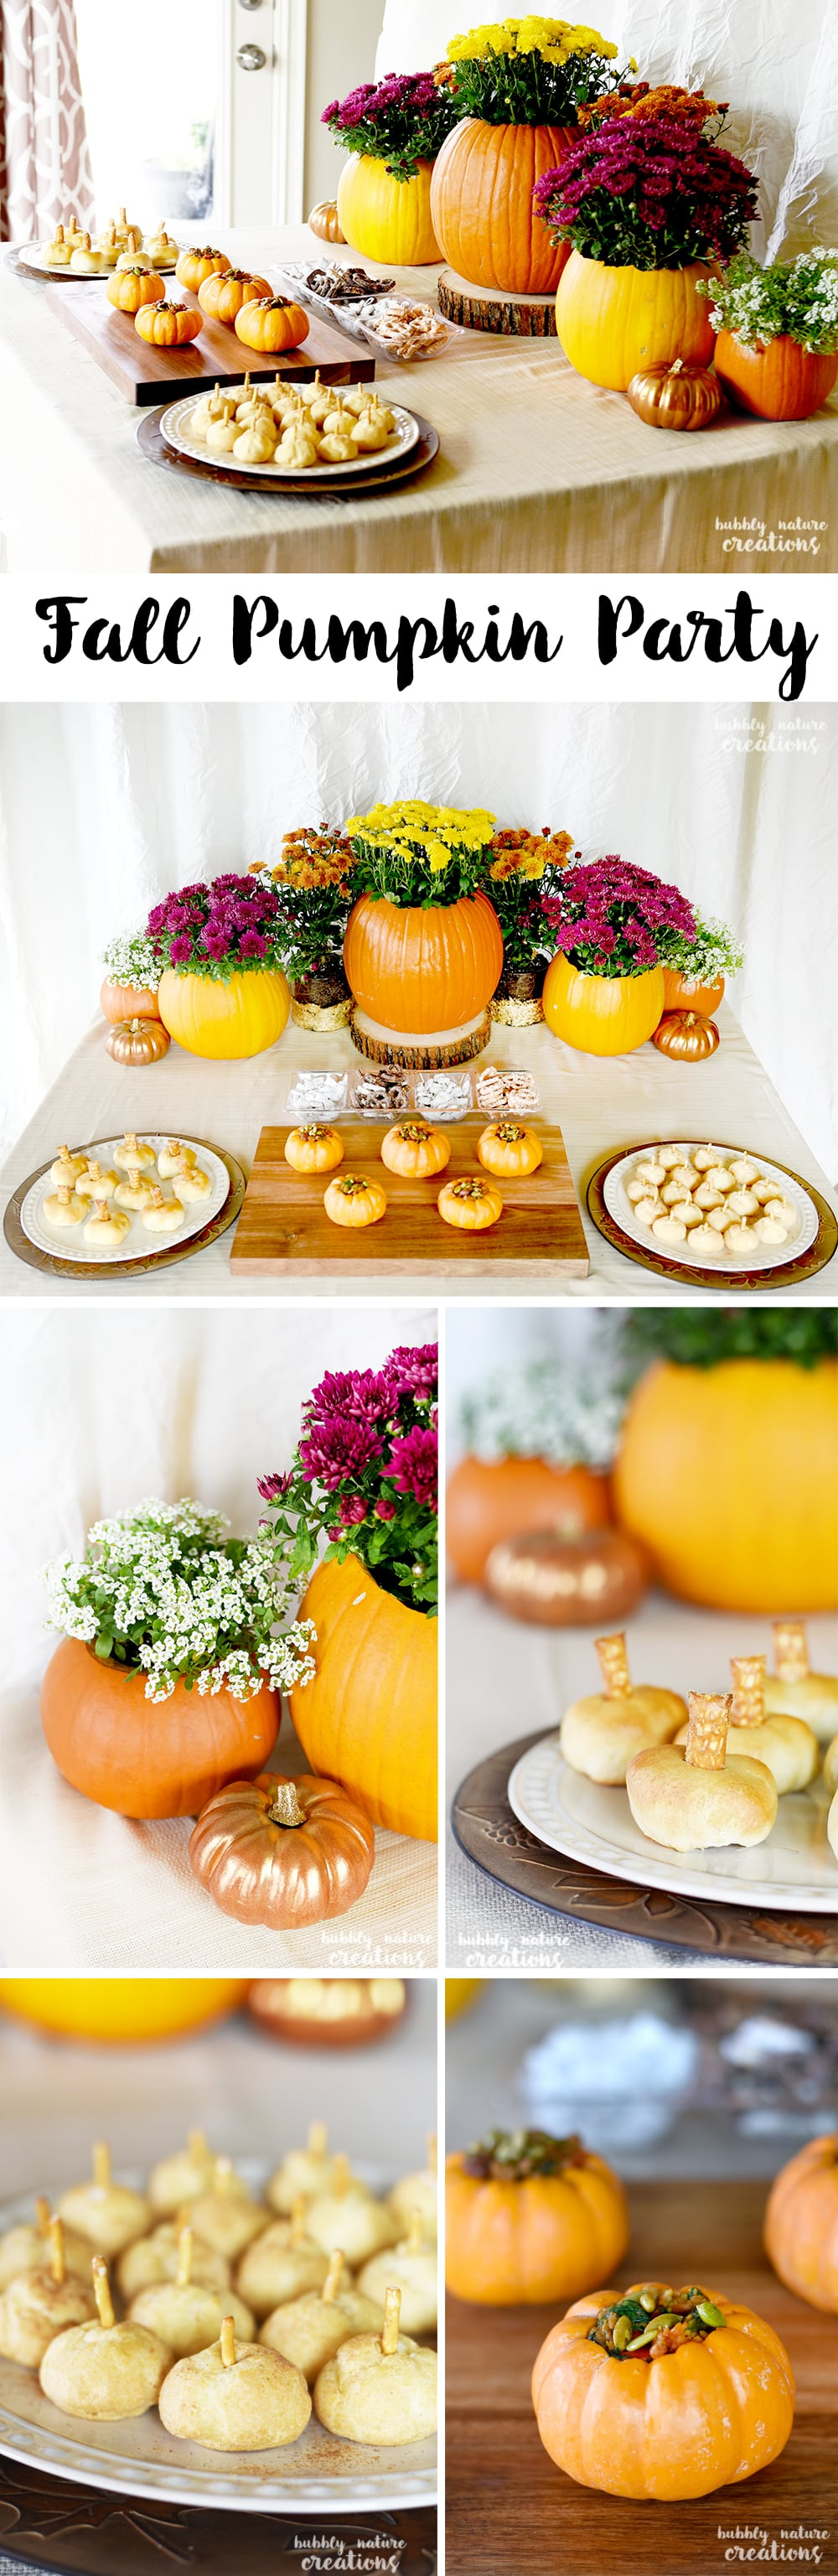 Fall Pumpkin Party Ideas! Such a beautiful tablescape for Thanksgiving or any Fall party. Love the mumkin centerpeice and pumpkin themed foods!